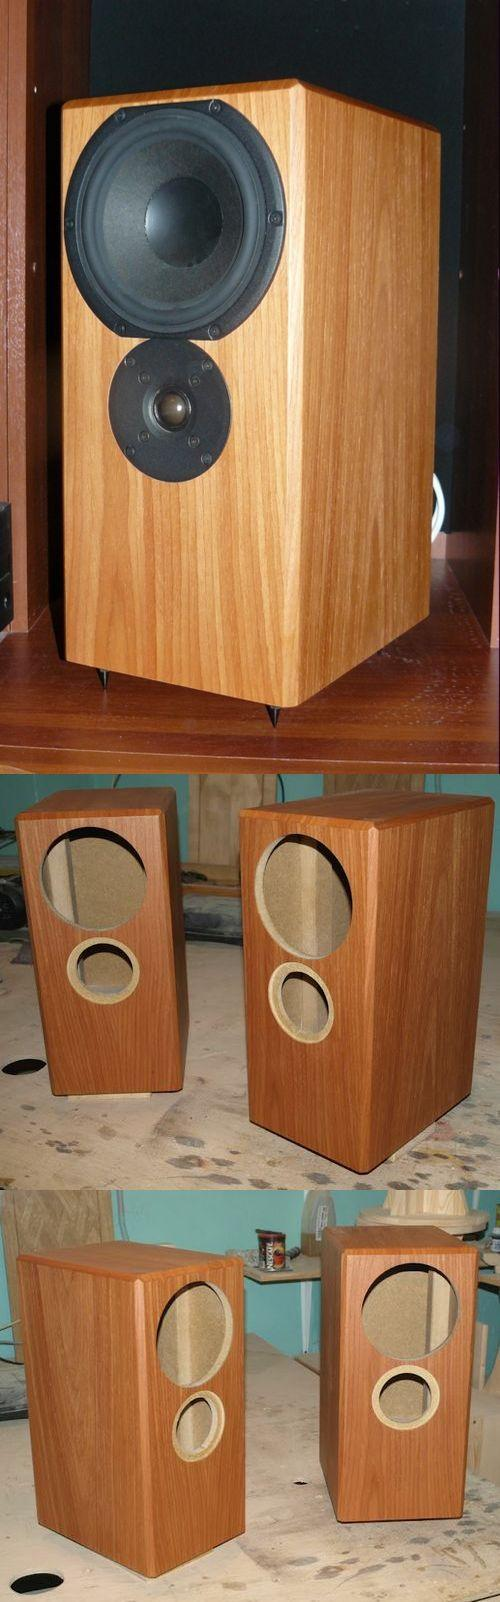 Stereo Speaker Cabinet and Bass Treble filter design hoparlor kabinleri speaker desings hoparlor kabin tasarim